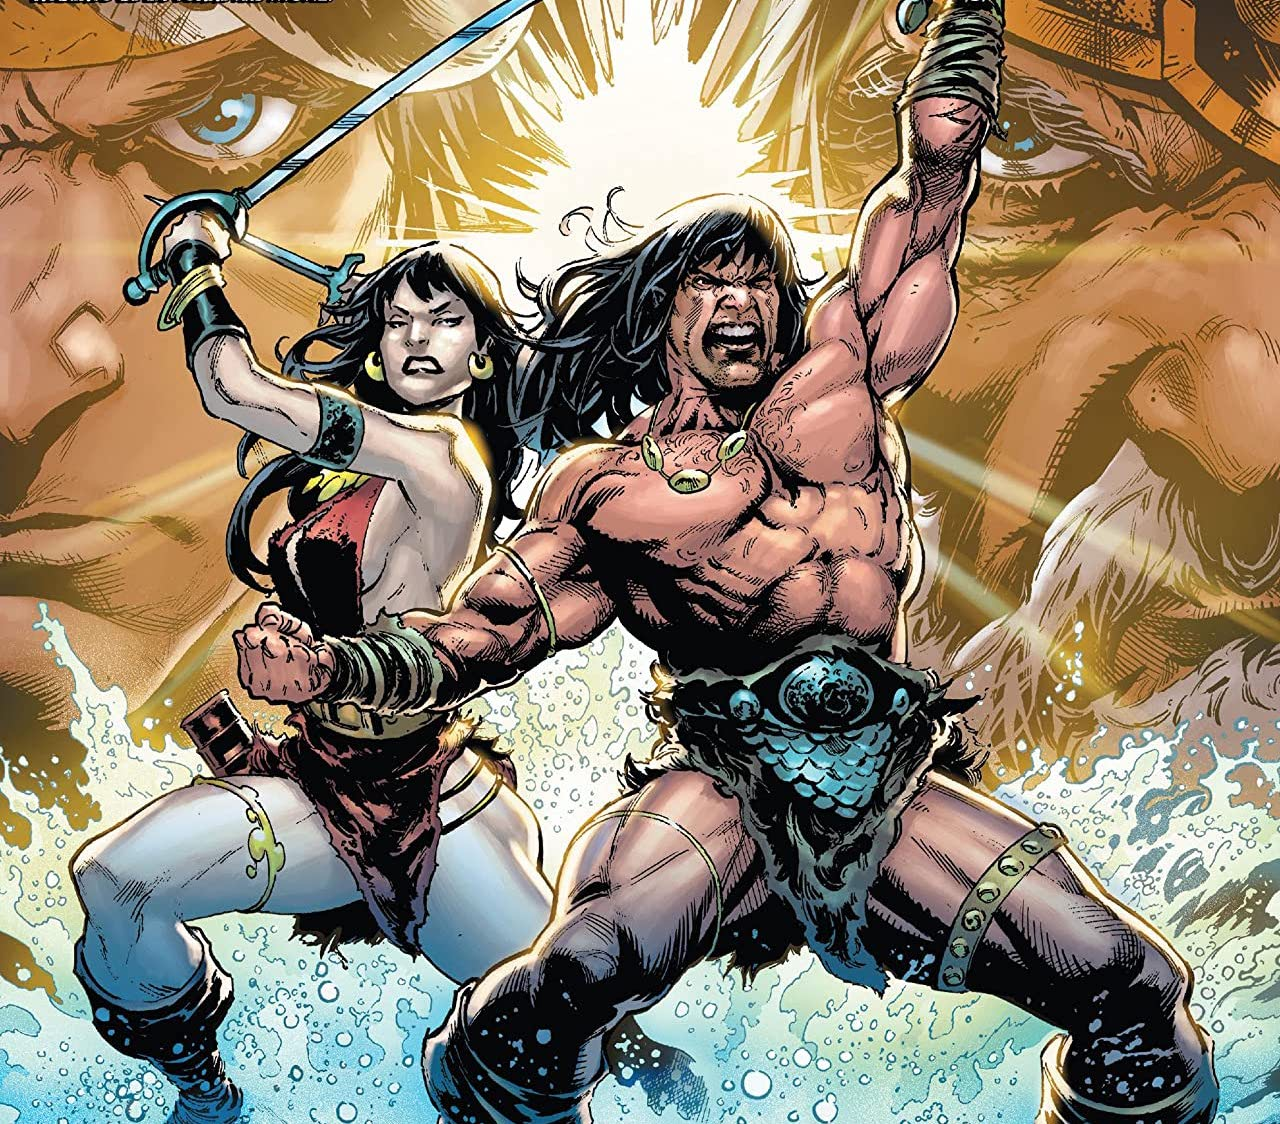 'Conan the Barbarian' #25 offers many violent delights